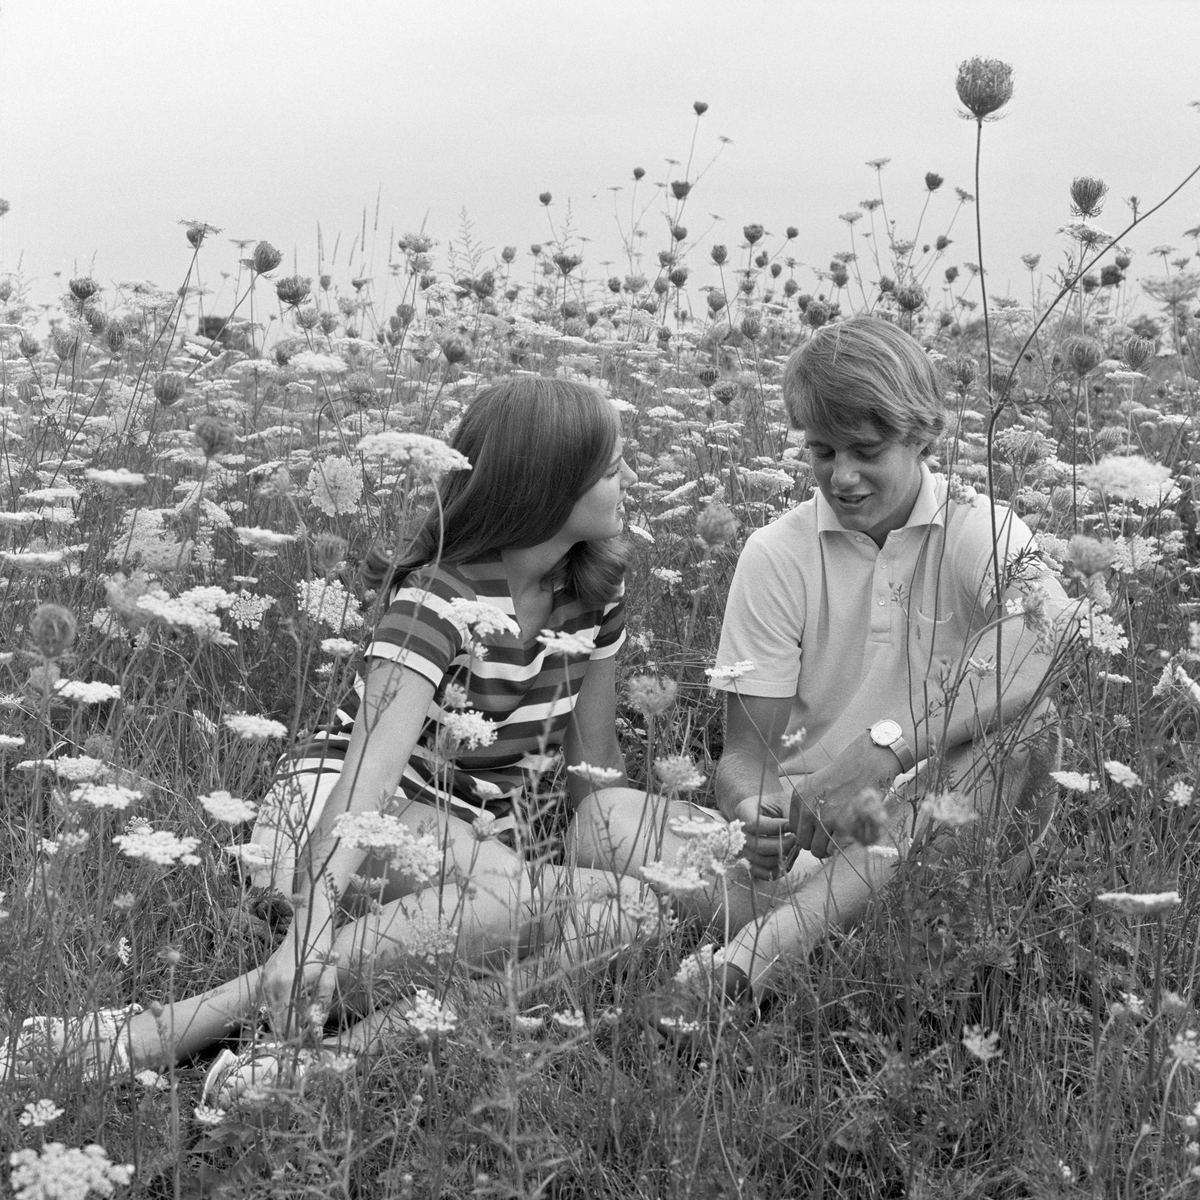 1970s TEENAGE COUPLE SITTING TOGETHER AND TALKING IN FIELD OF QUEEN ANNE'S LACE AND WILDFLOWERS